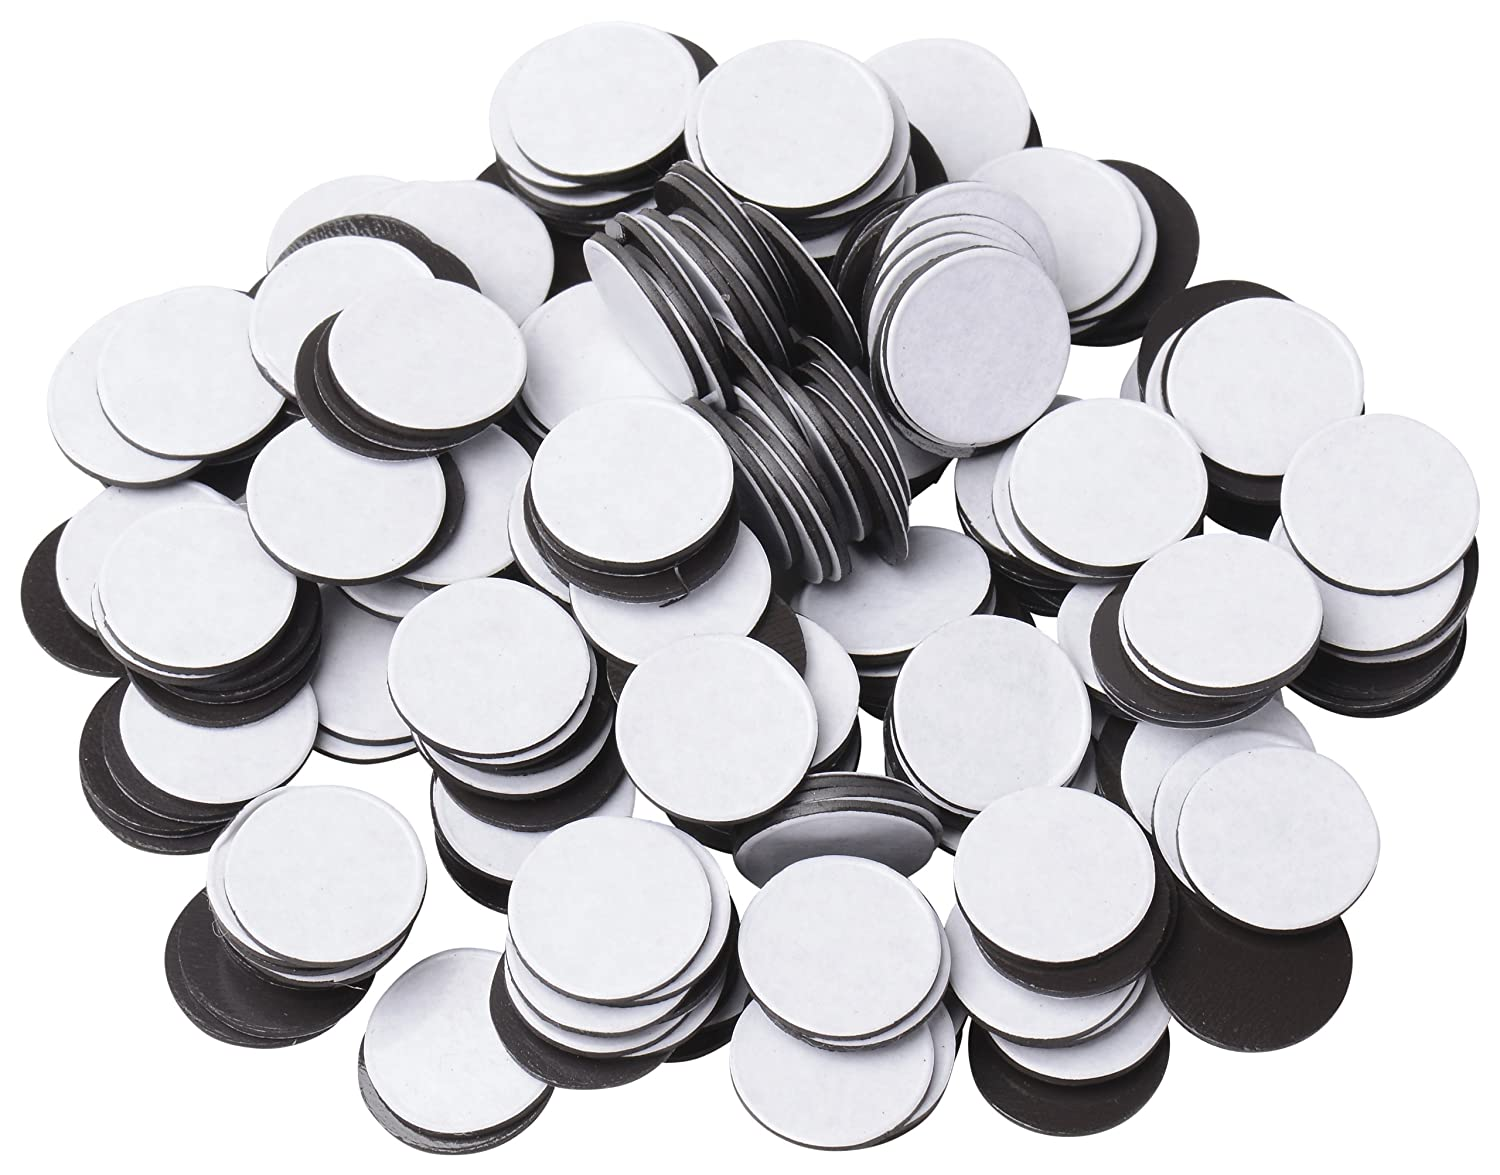 BYKES Magnets 1/2' Round Disc with Adhesive Backing - 250 Pcs BYKES Technologies AH1